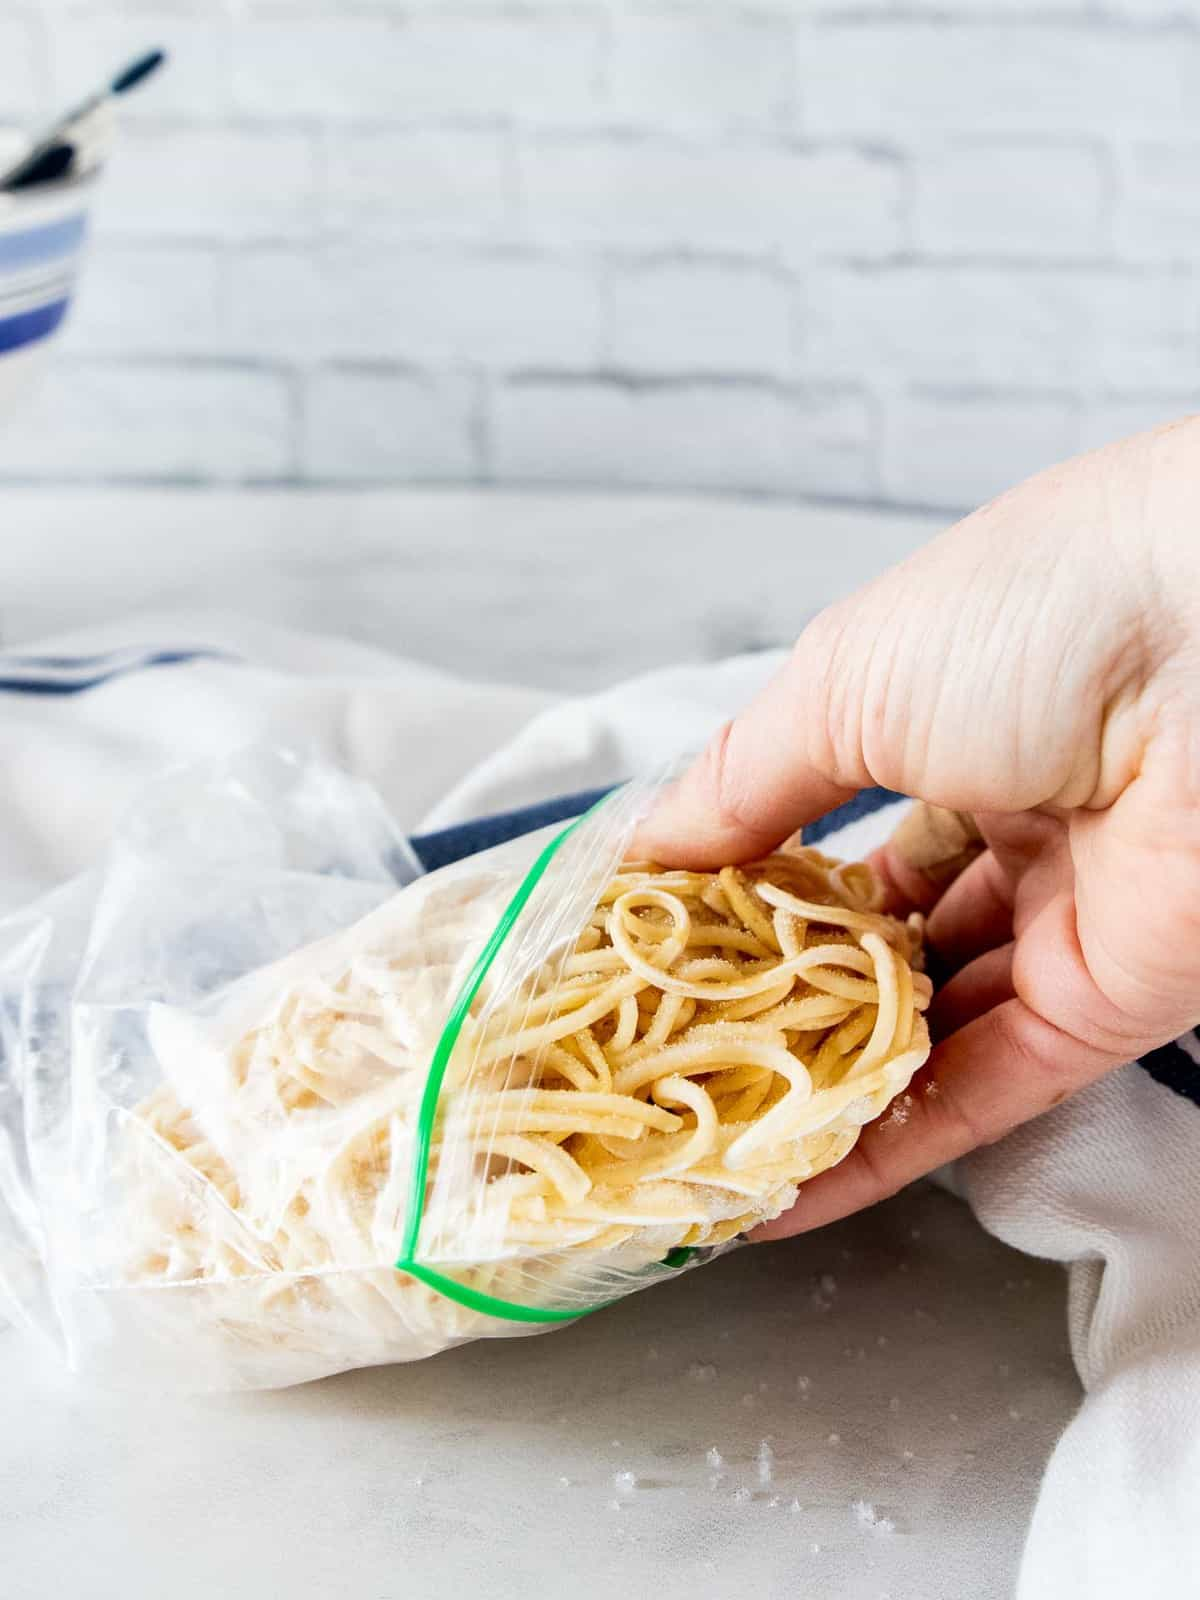 Frozen pasta removed from bag.